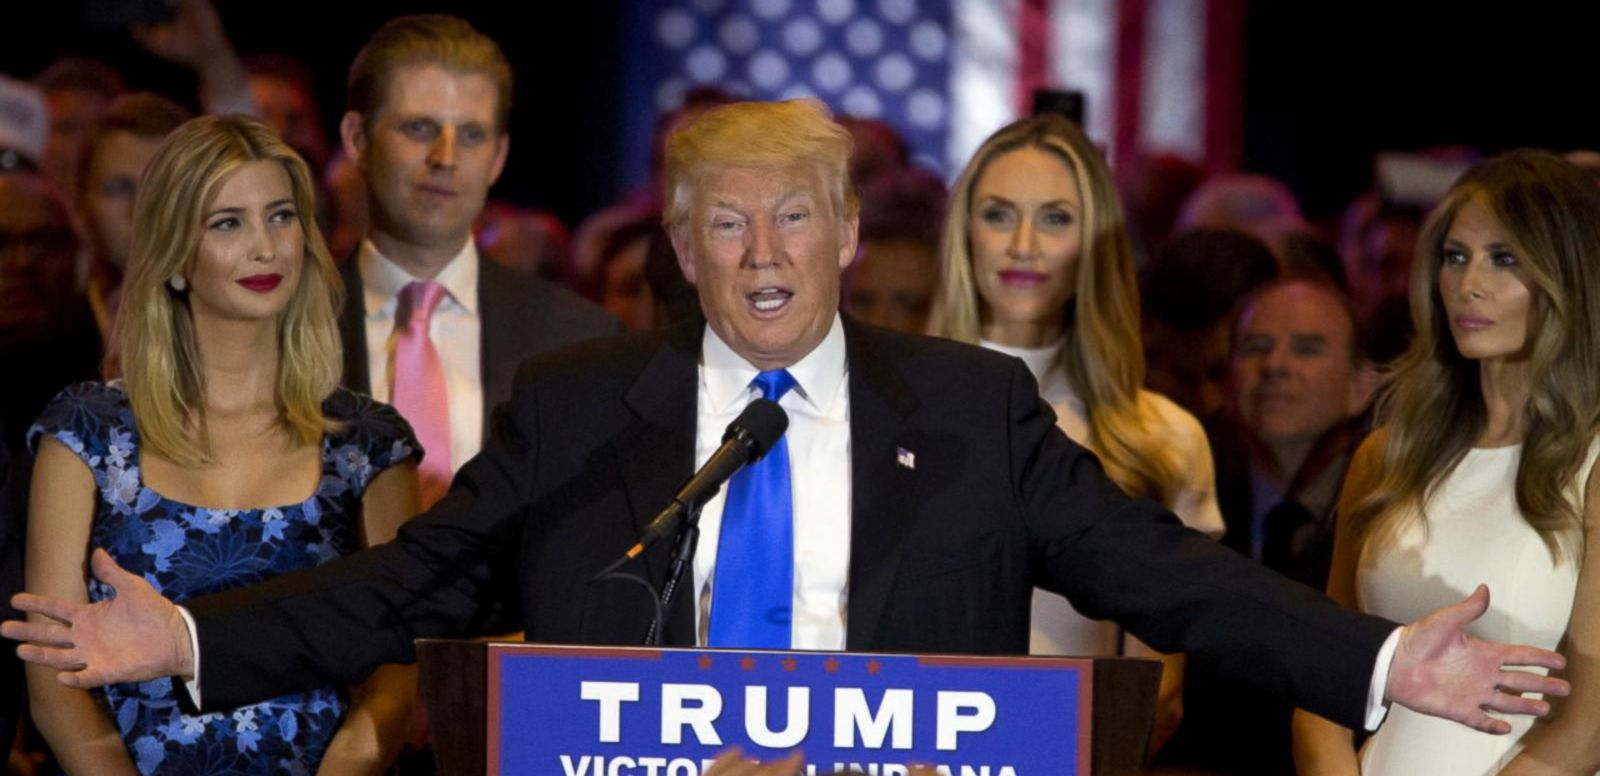 VIDEO: Donald Trump Is the Last GOP Candidate Standing